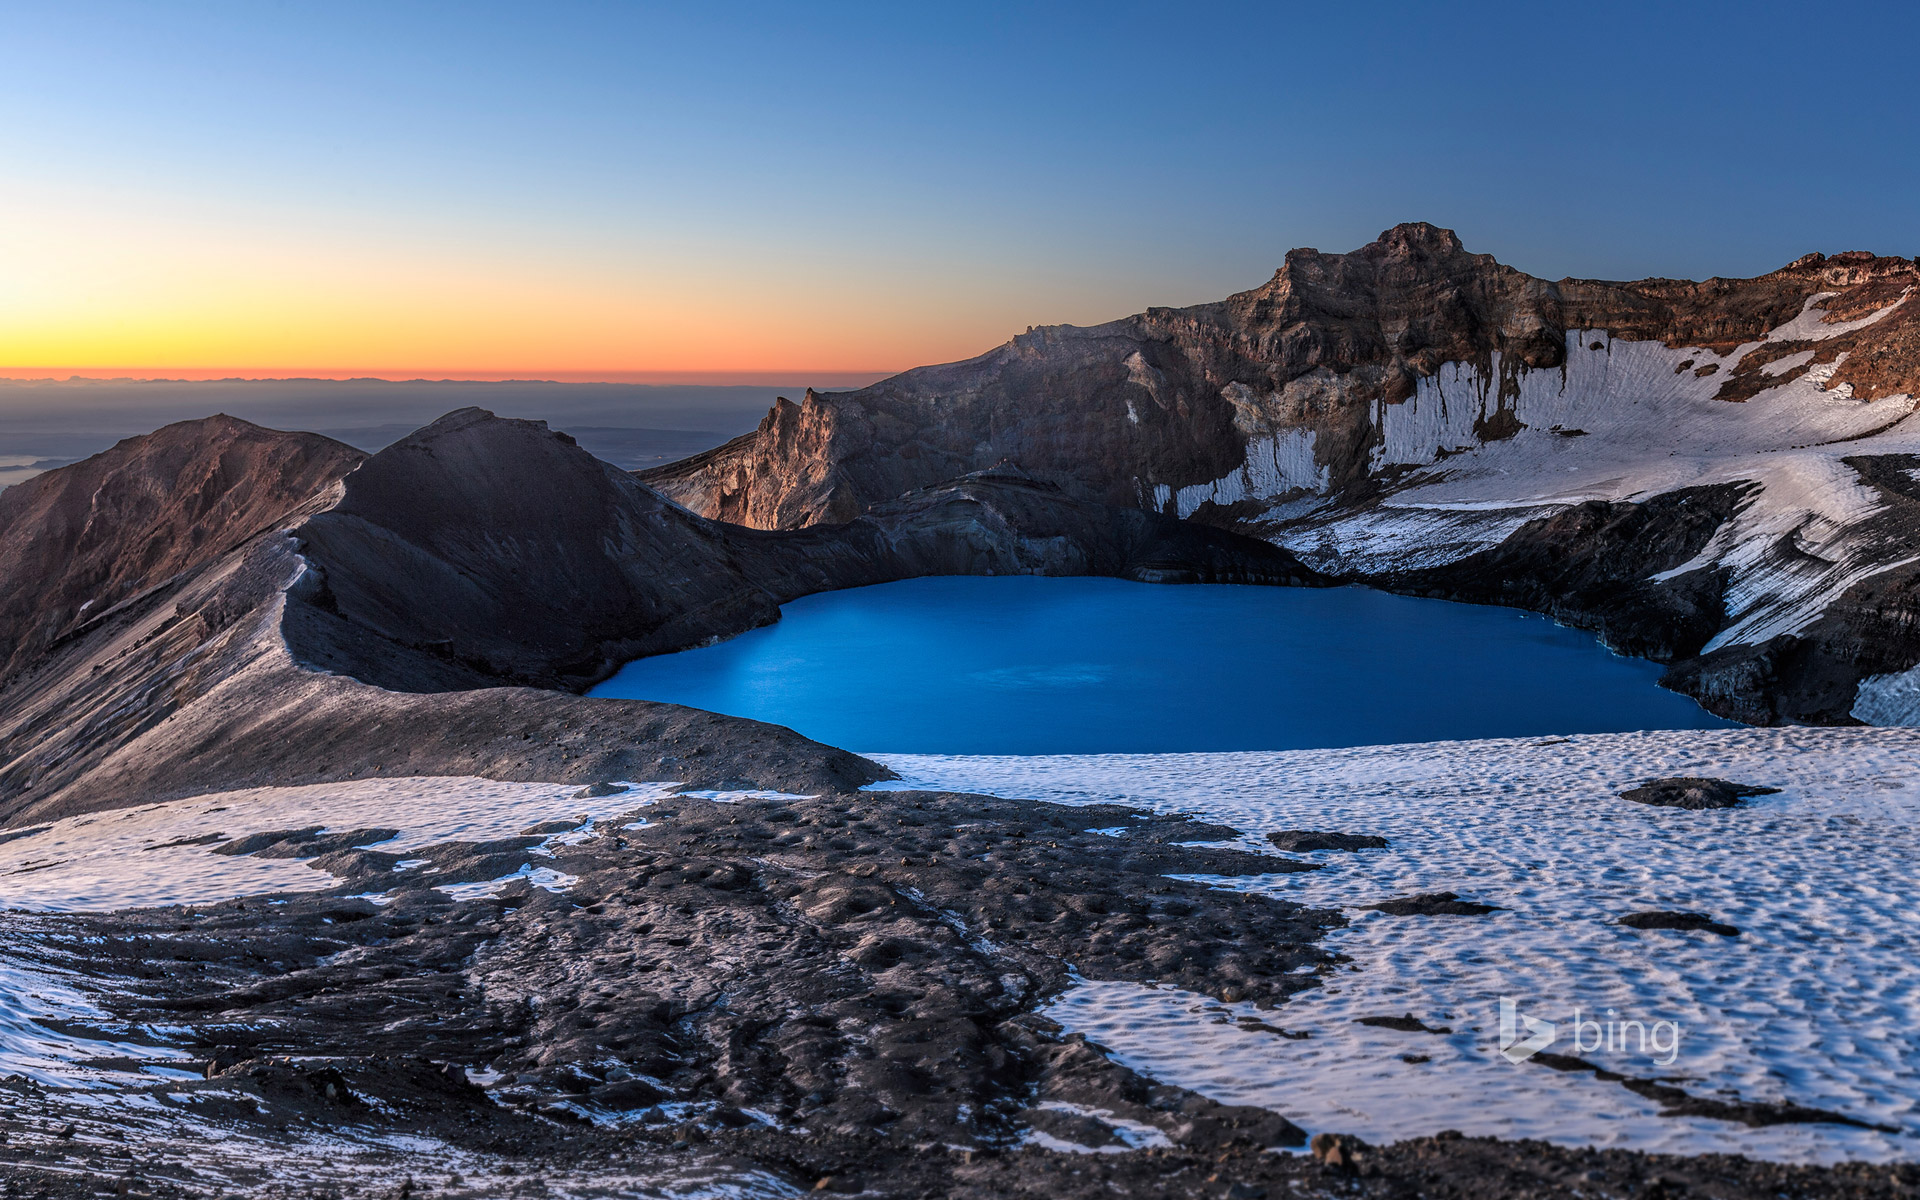 Mount Ruapehu's crater lake, New Zealand